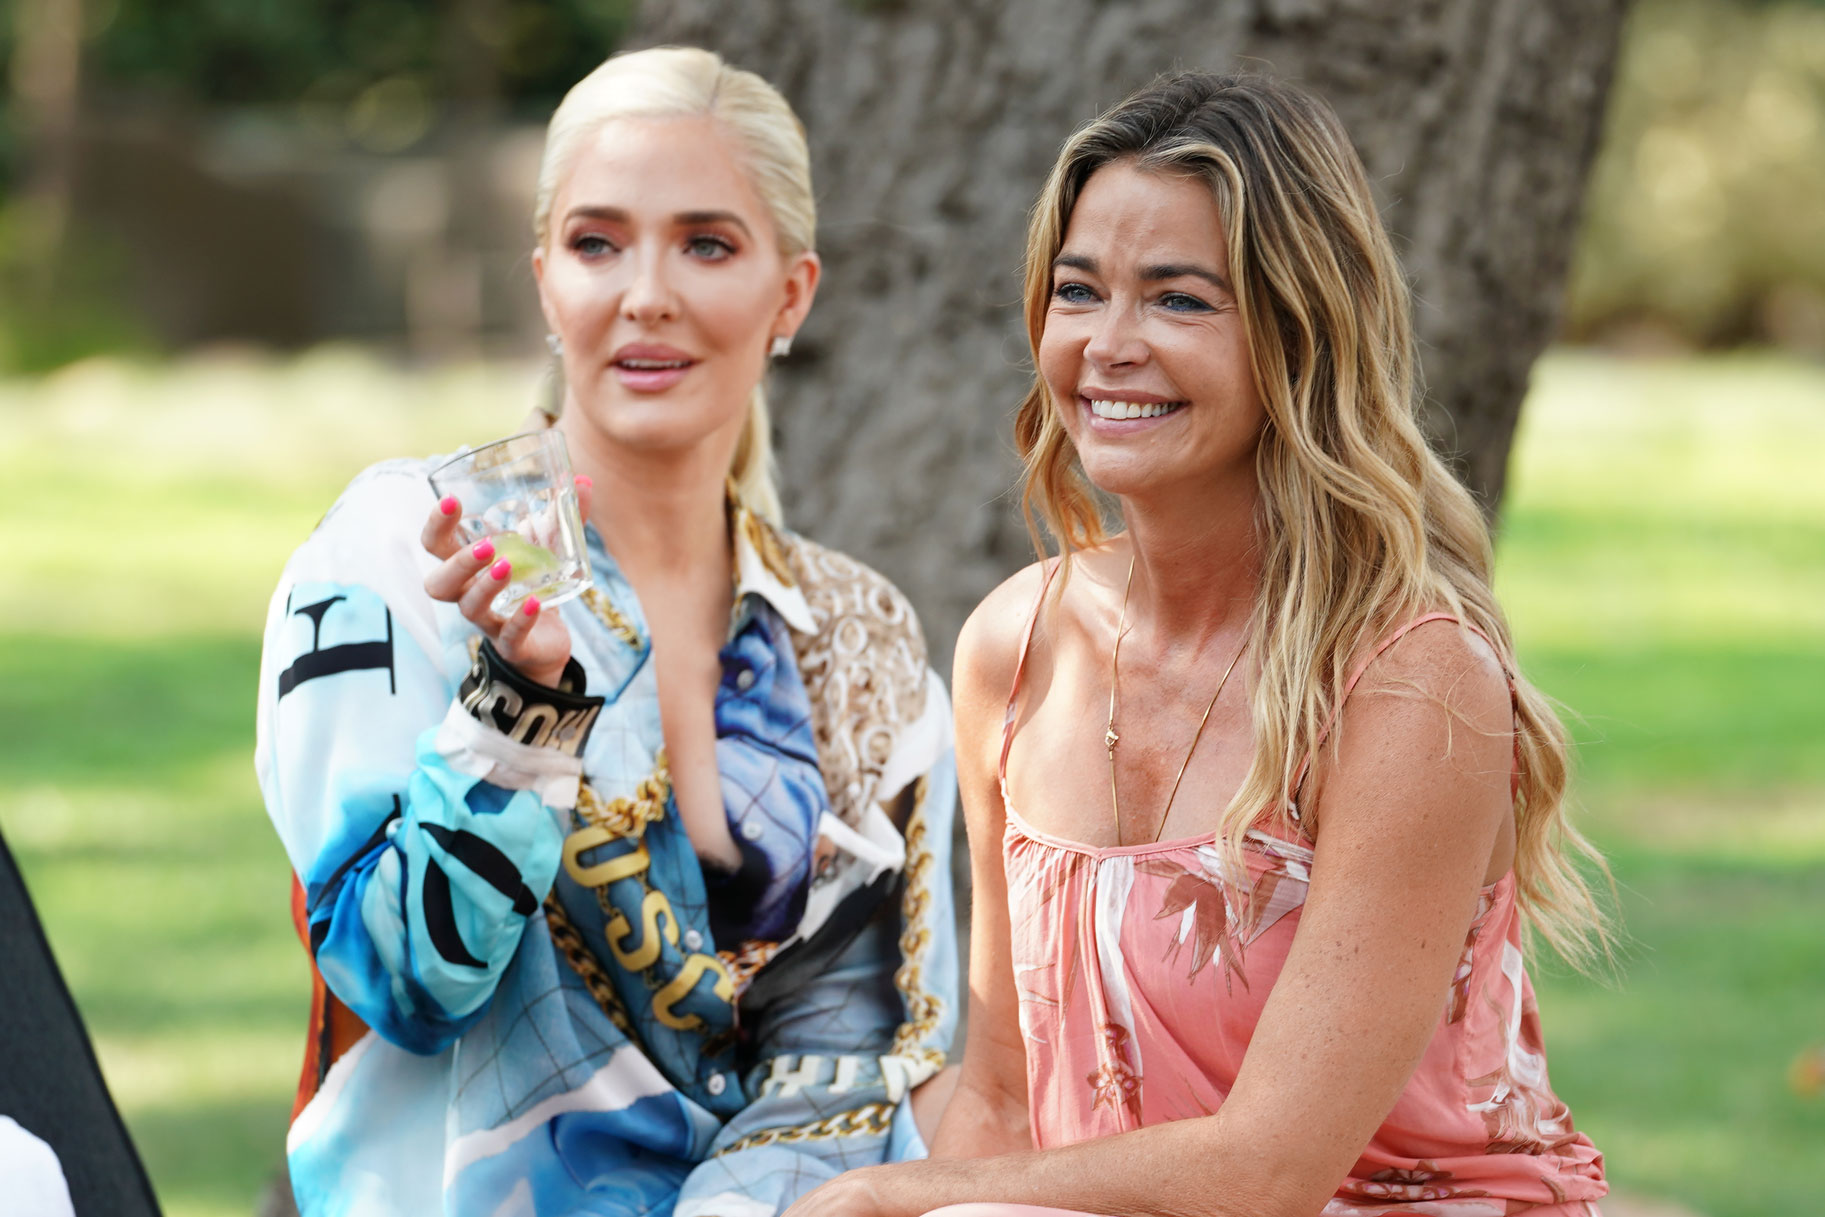 Erika Girardi and Denise Richards on The Real Housewives of Beverly Hills Season 9